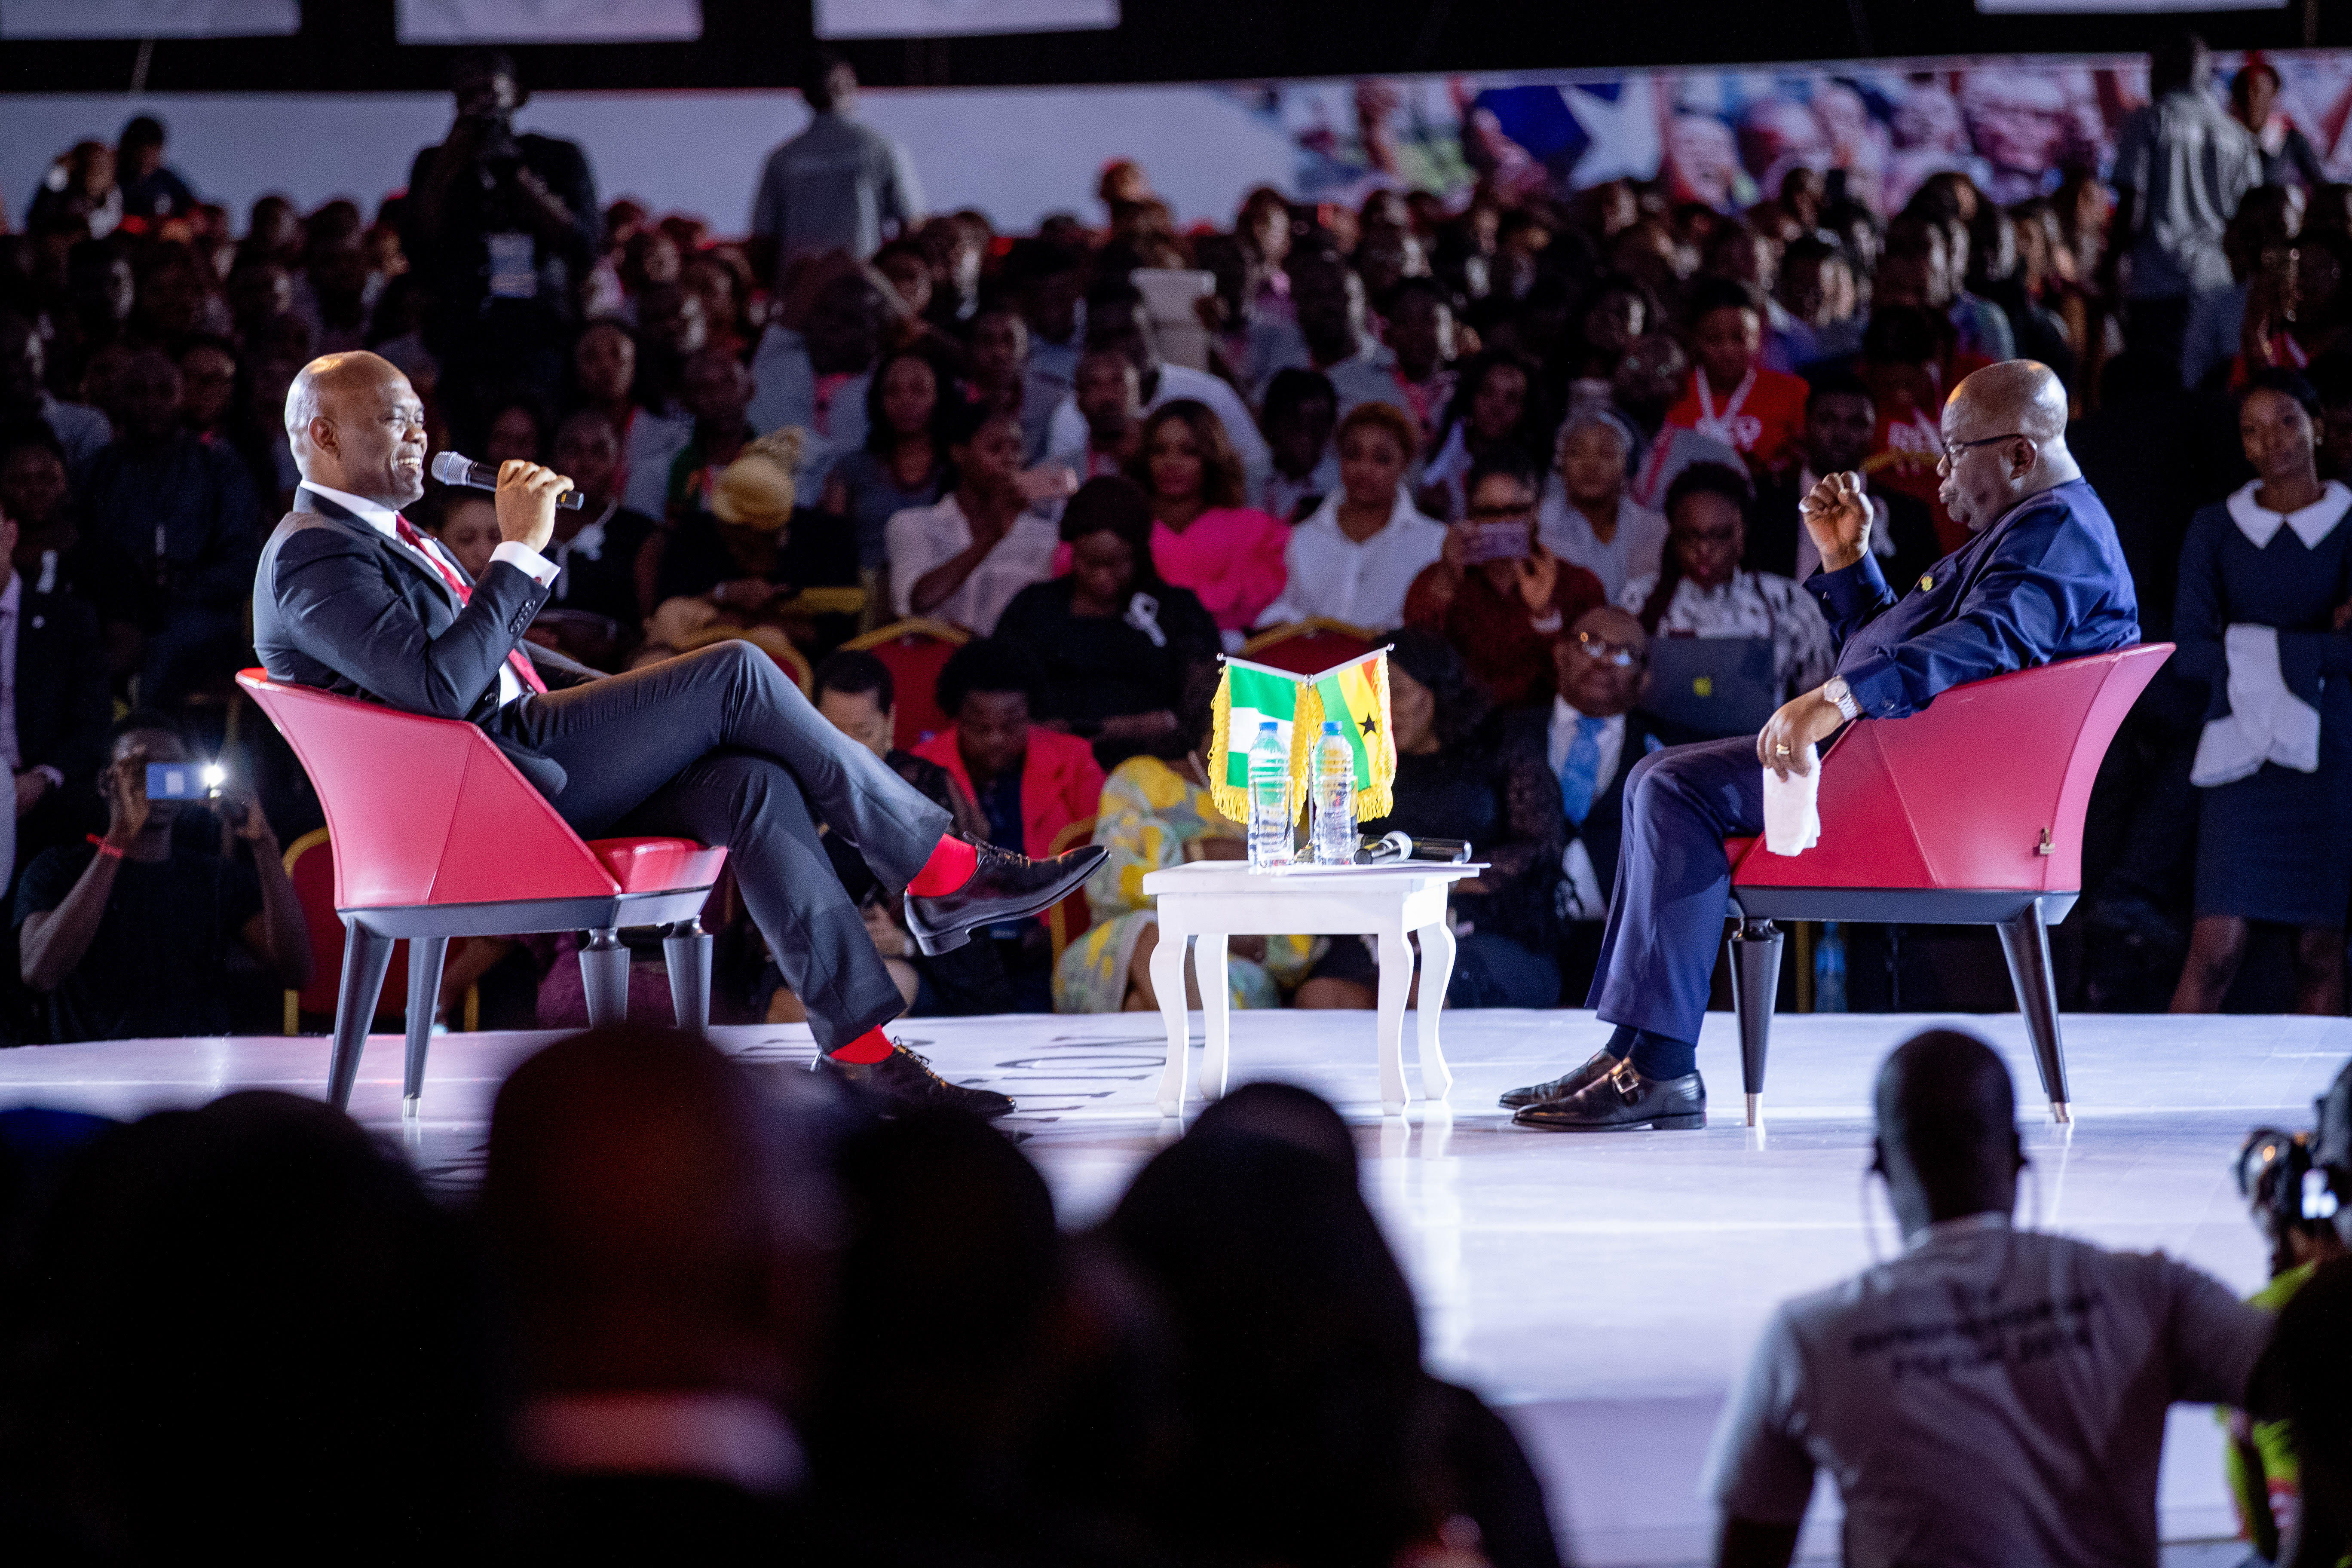 5,000 African entrepreneurs, private and public sector leaders, others meet at Tony Elumelu Foundation Entrepreneurship Forum in Lagos